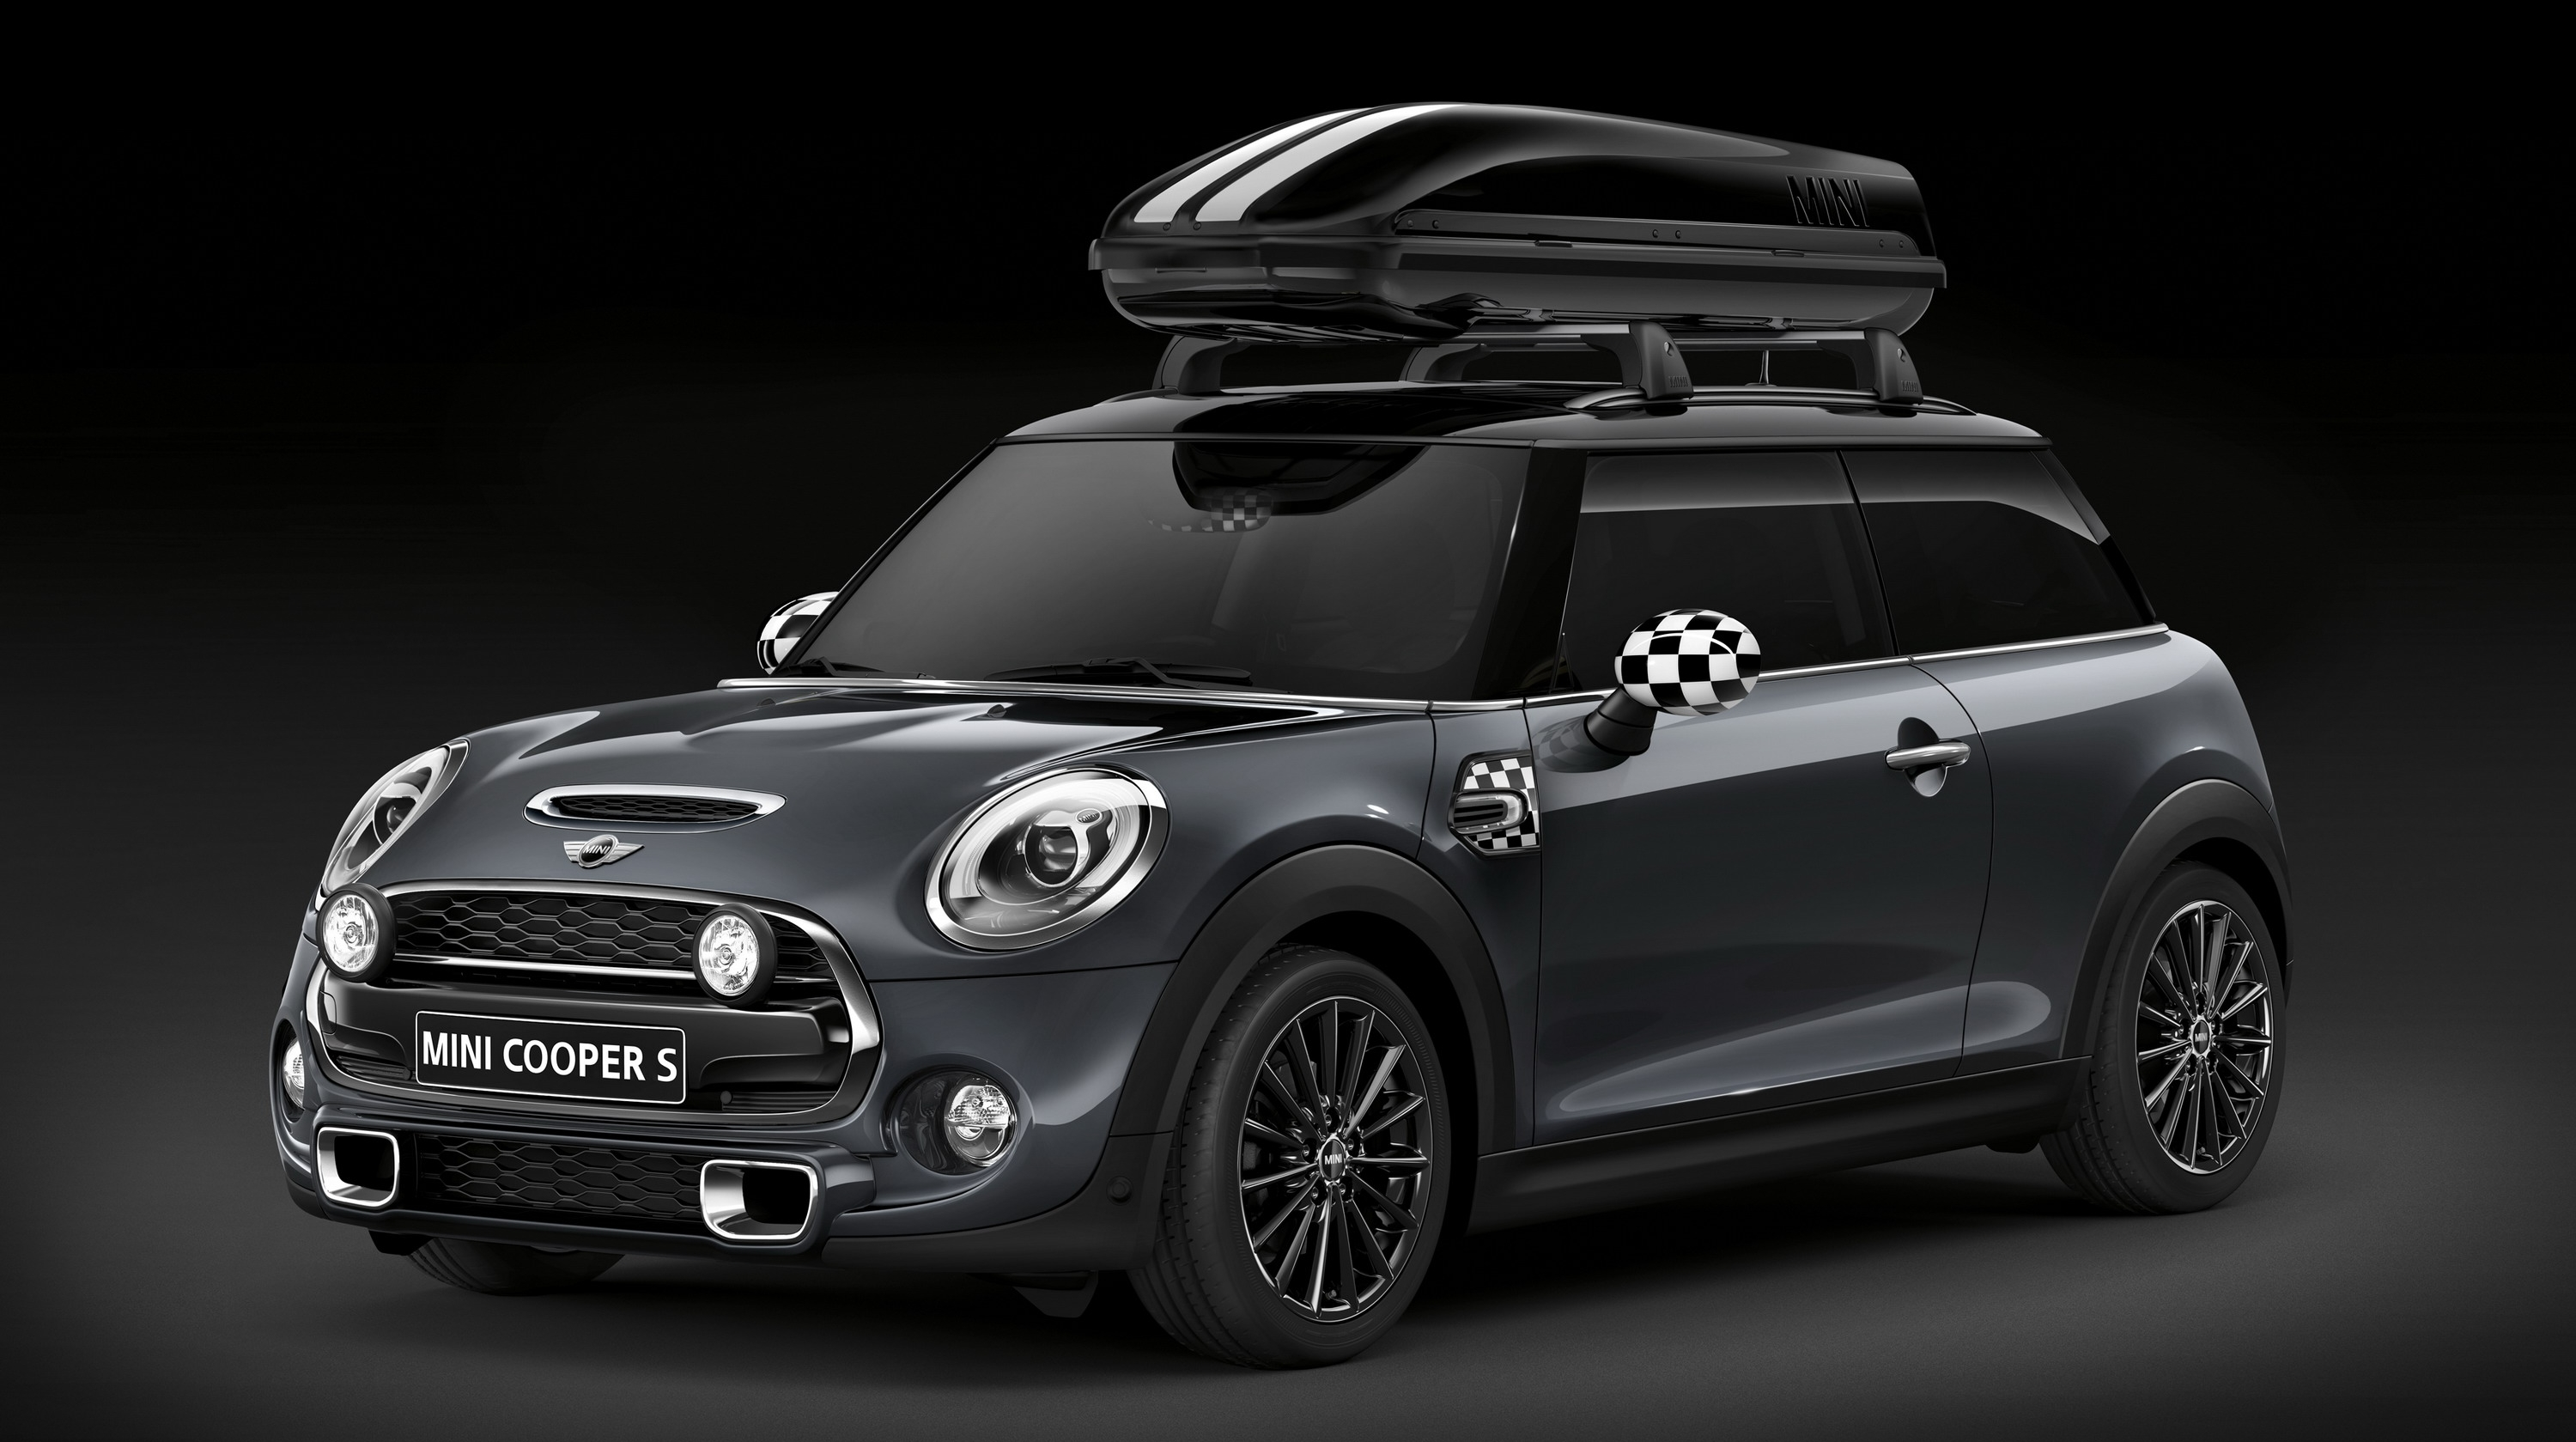 Since its rebirth under bmw in 2002 no other car company has been able to touch mini when it comes to its range of customization